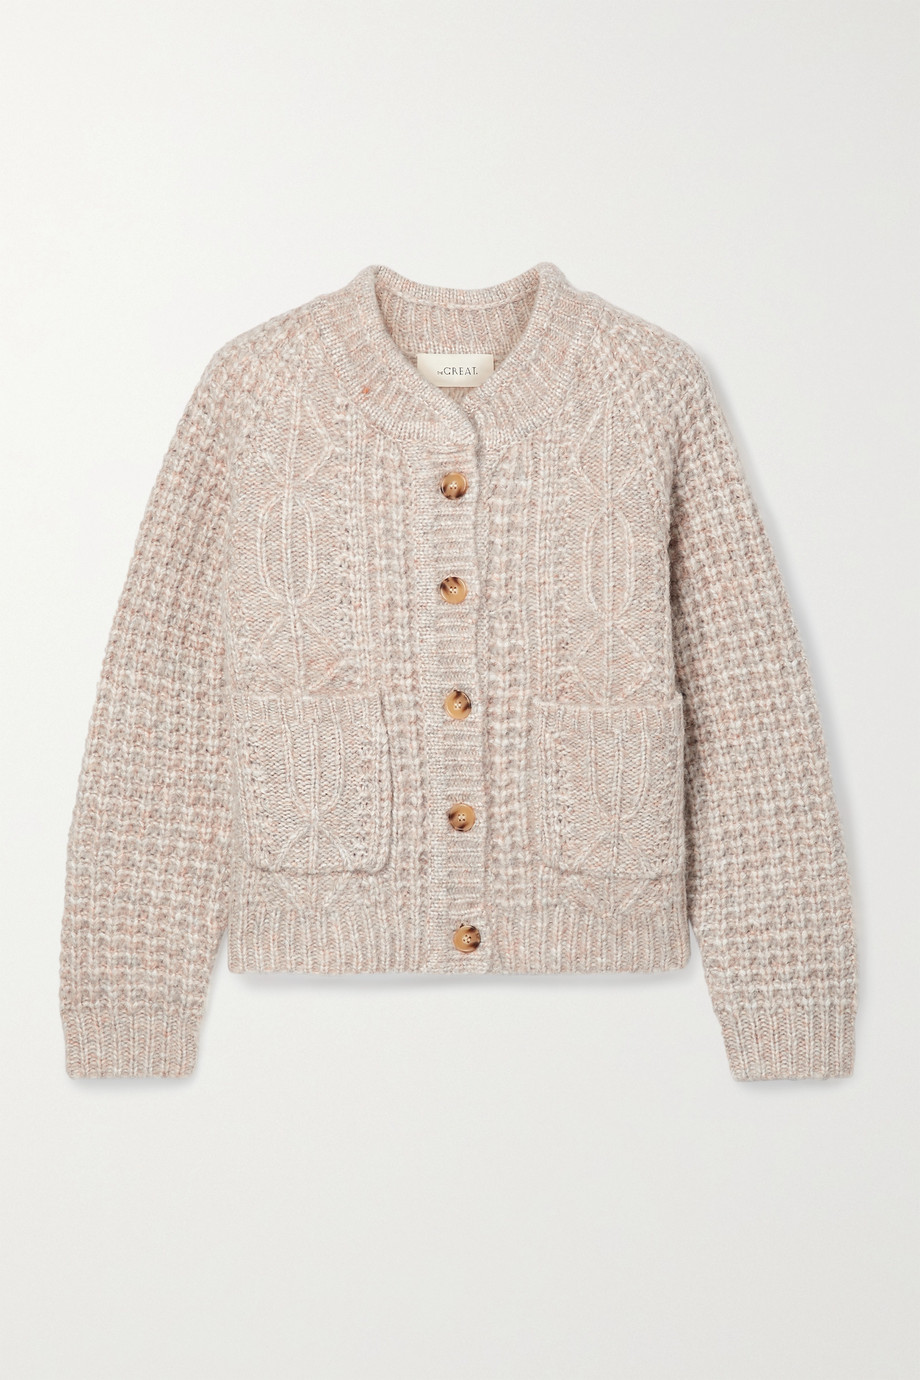 THE GREAT. The Shrunken mélange cable-knit cardigan